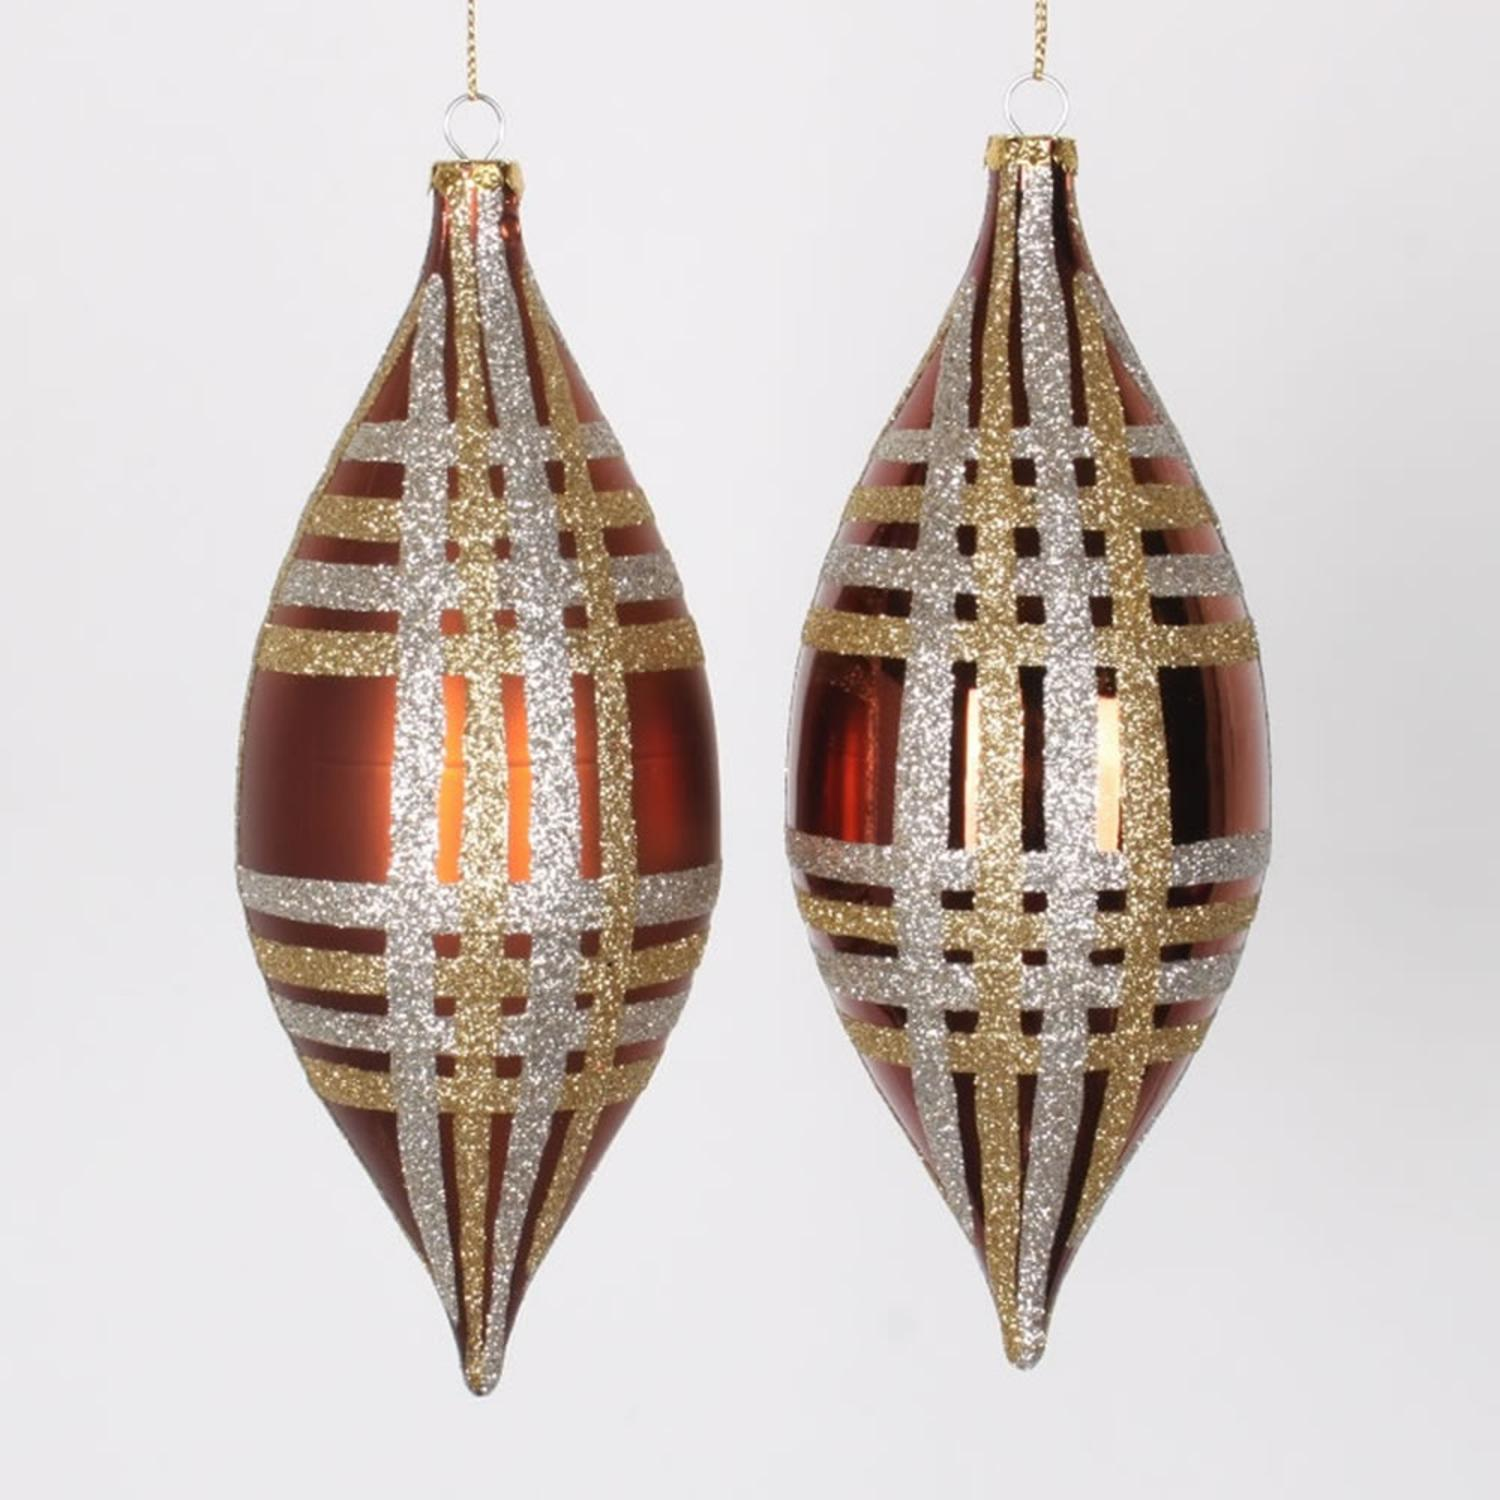 """4ct Copper w/ Champagne Gold & Silver Glitter Plaid Shatterproof Christmas Finial Drop Ornaments 7"""""""